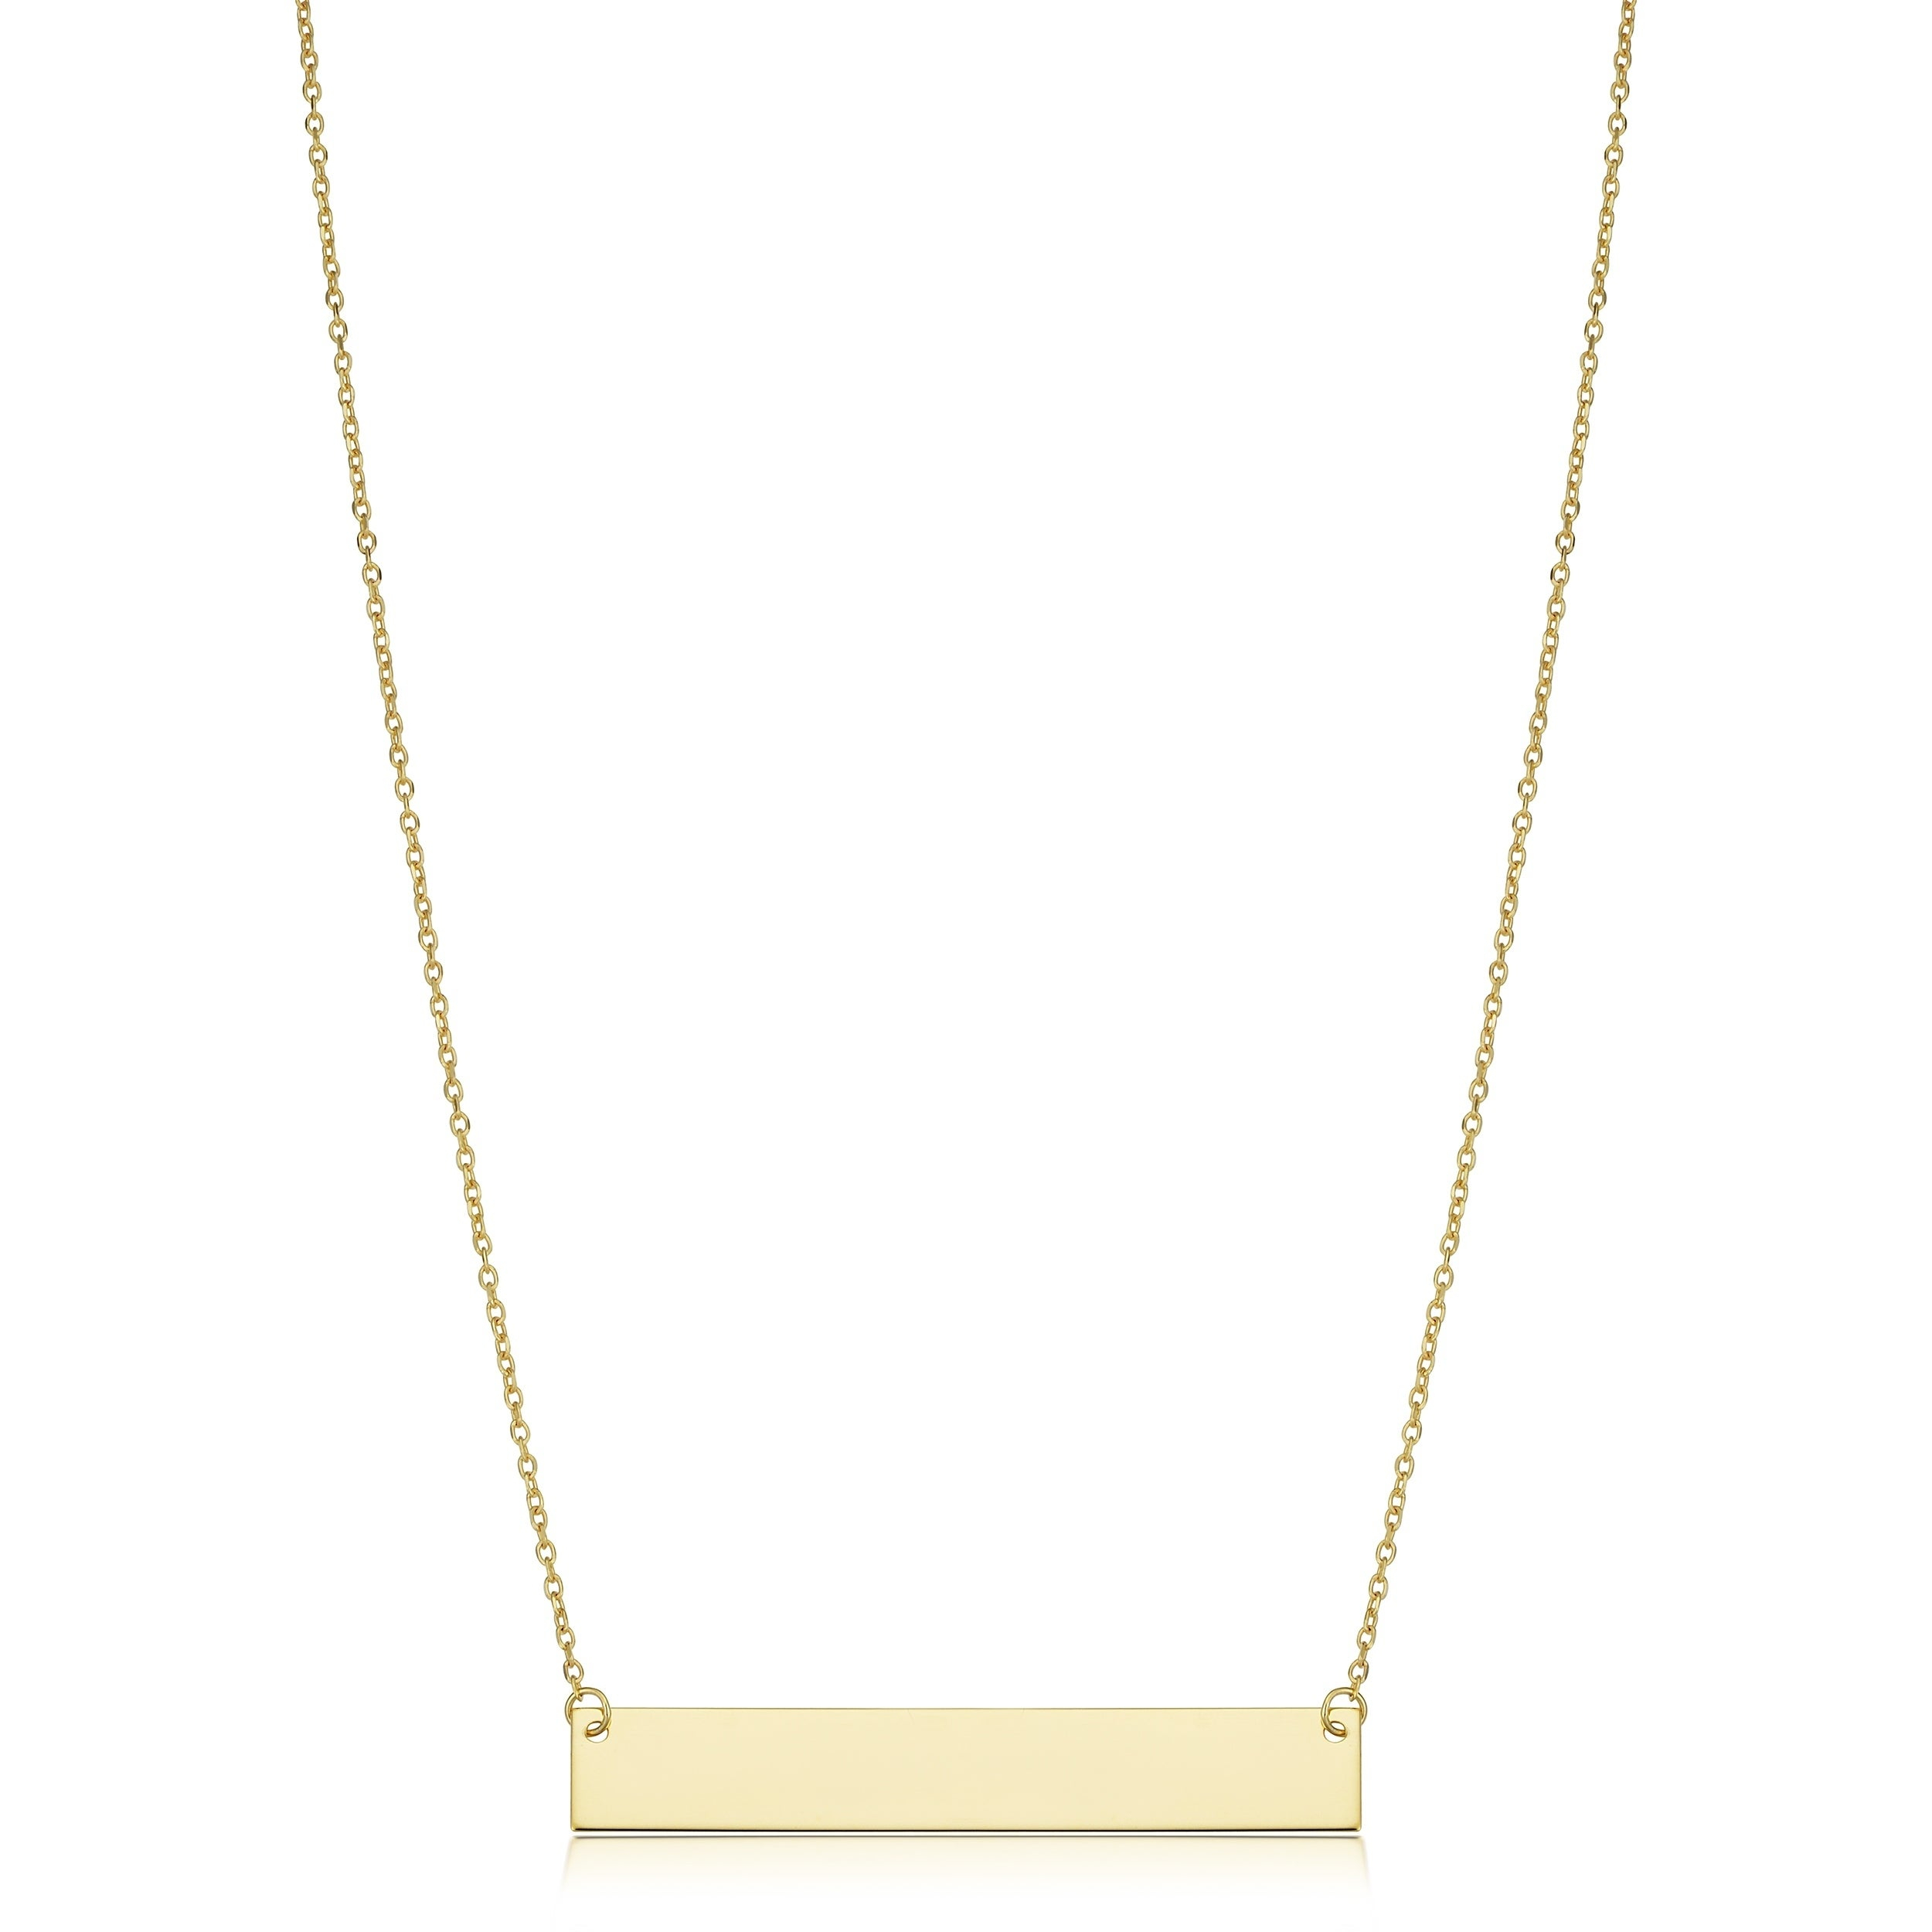 10k Or 14k Gold Engraveable Bar Cable Chain Necklace (18 Inch) With Most Recent Classic Cable Chain Necklaces (View 3 of 25)